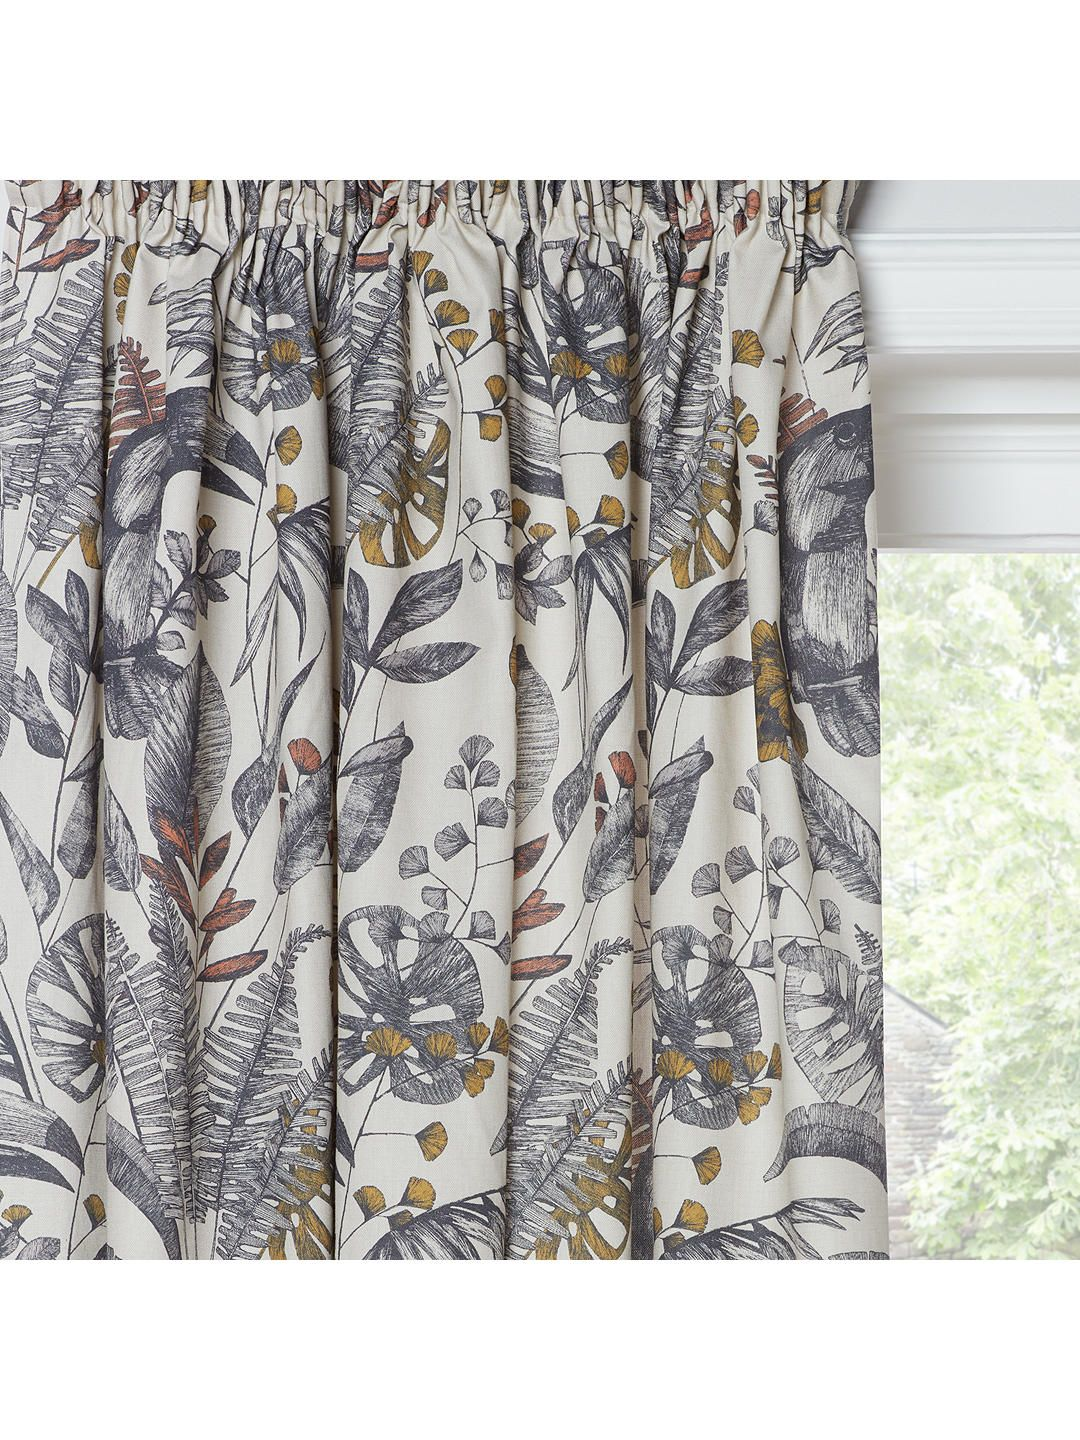 847269440f8c BuyJohn Lewis & Partners Ipanema Pair Lined Pencil Pleat Curtains, Natural,  W167 x Drop 137cm Online at johnlewis.com